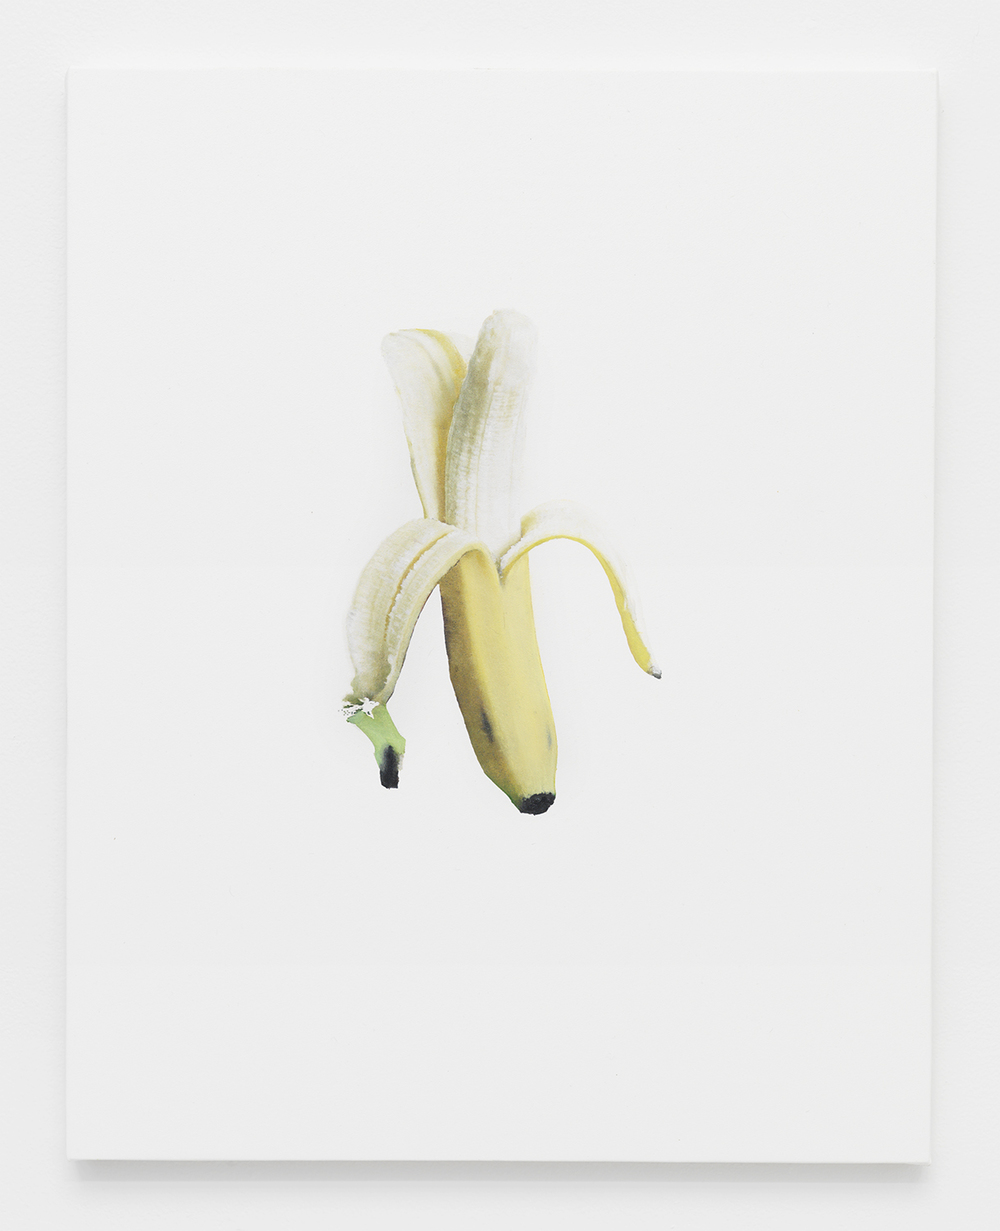 Banana Jpeg 2   2014    Oil and Epson Ultrachrome inkjet on Epson synthetic material    20 x 16 inches